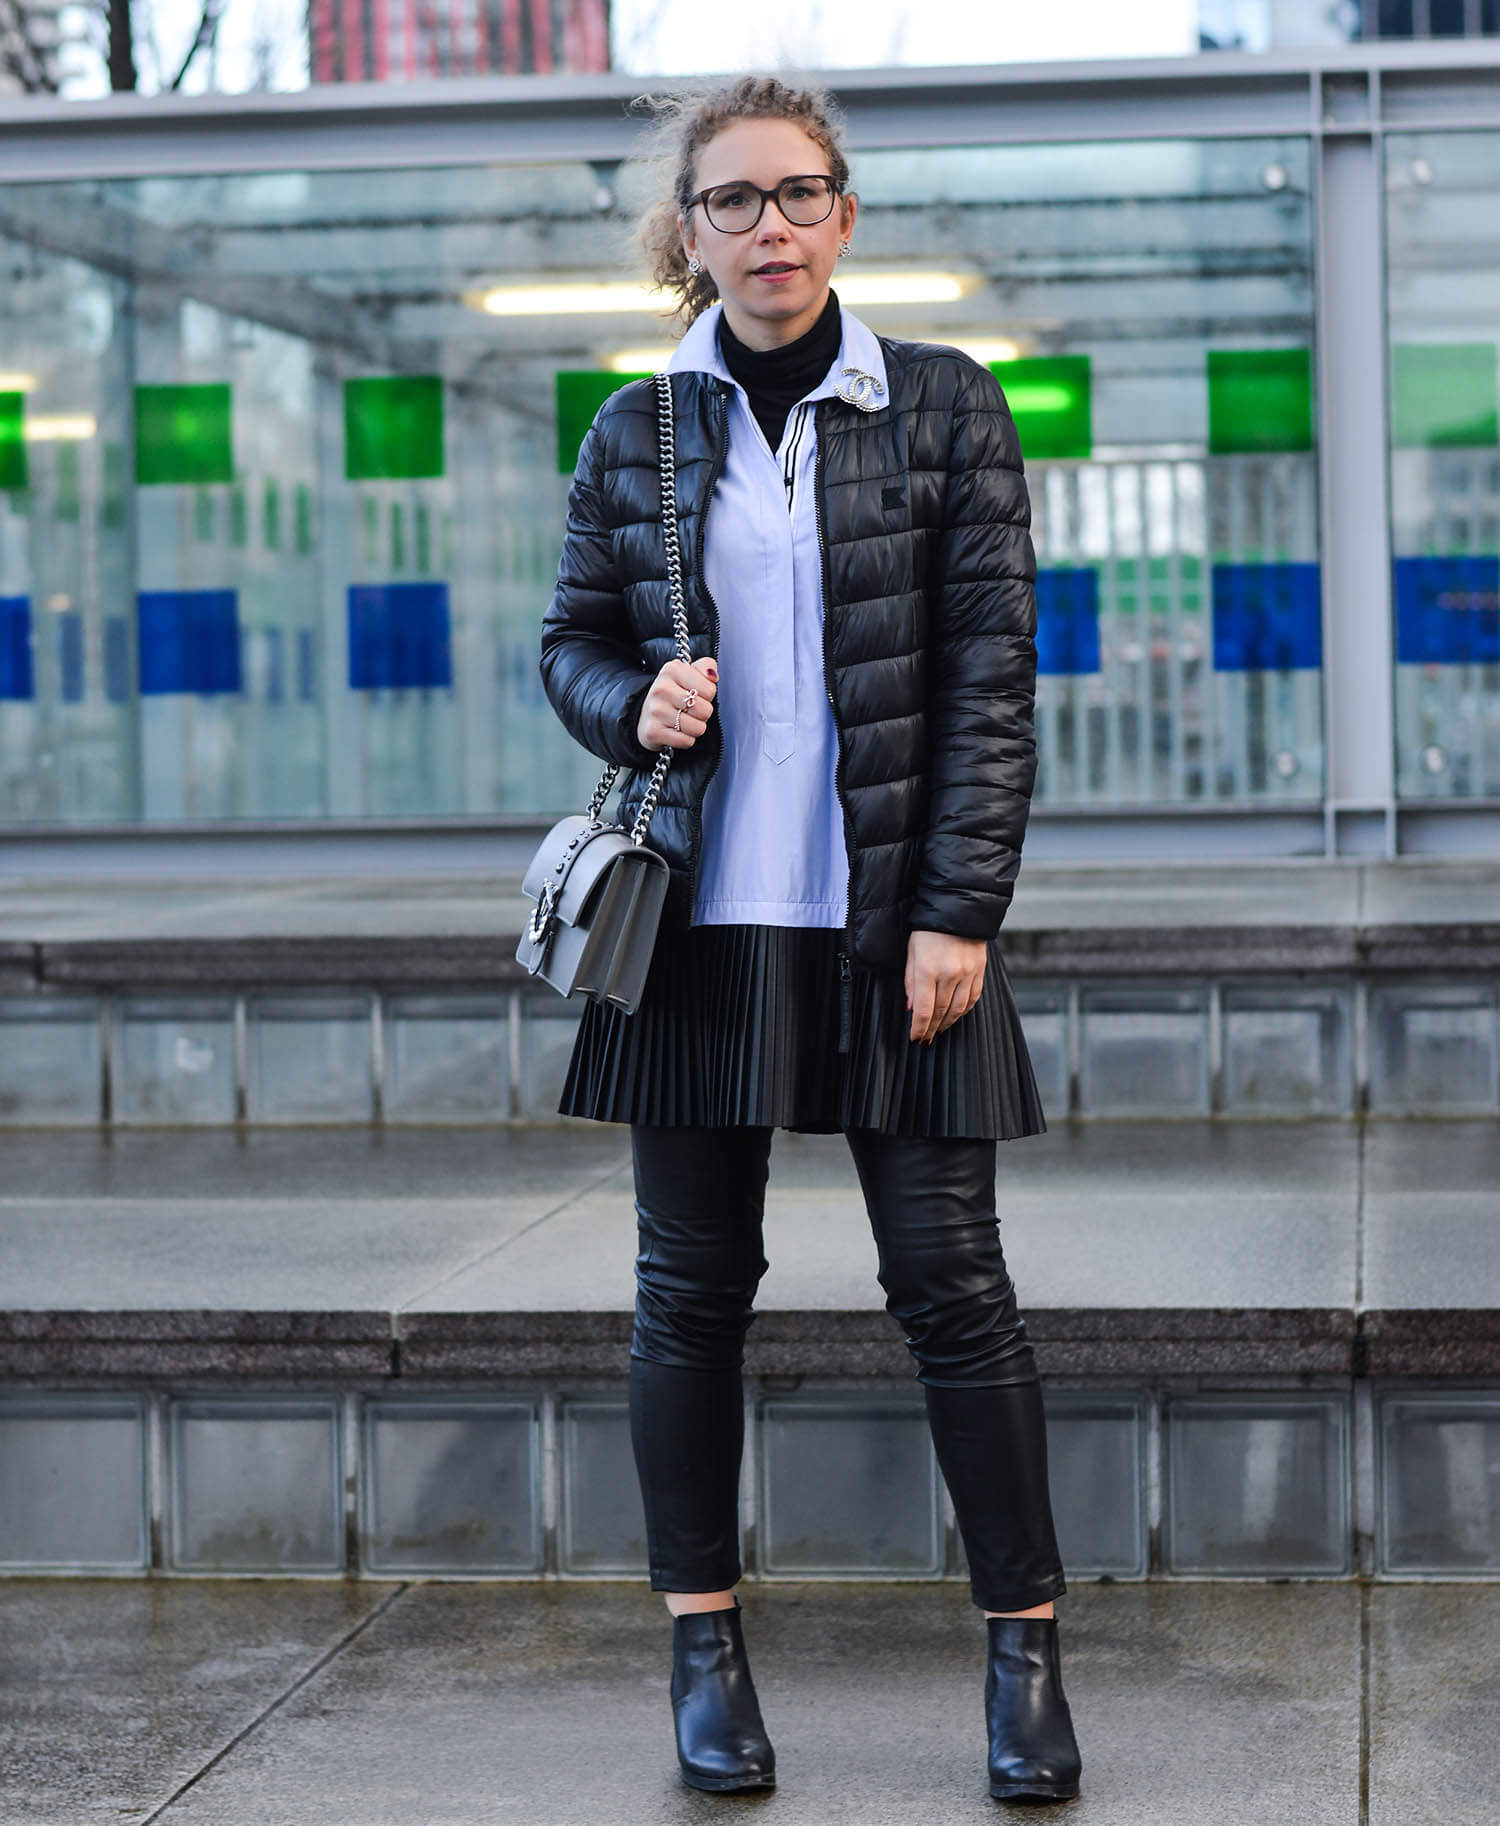 Outfit-Zara-Longblouse-with-fake-leather-pleated-skirt-in-Rotterdam-kationette-fashionblogger-netherlands